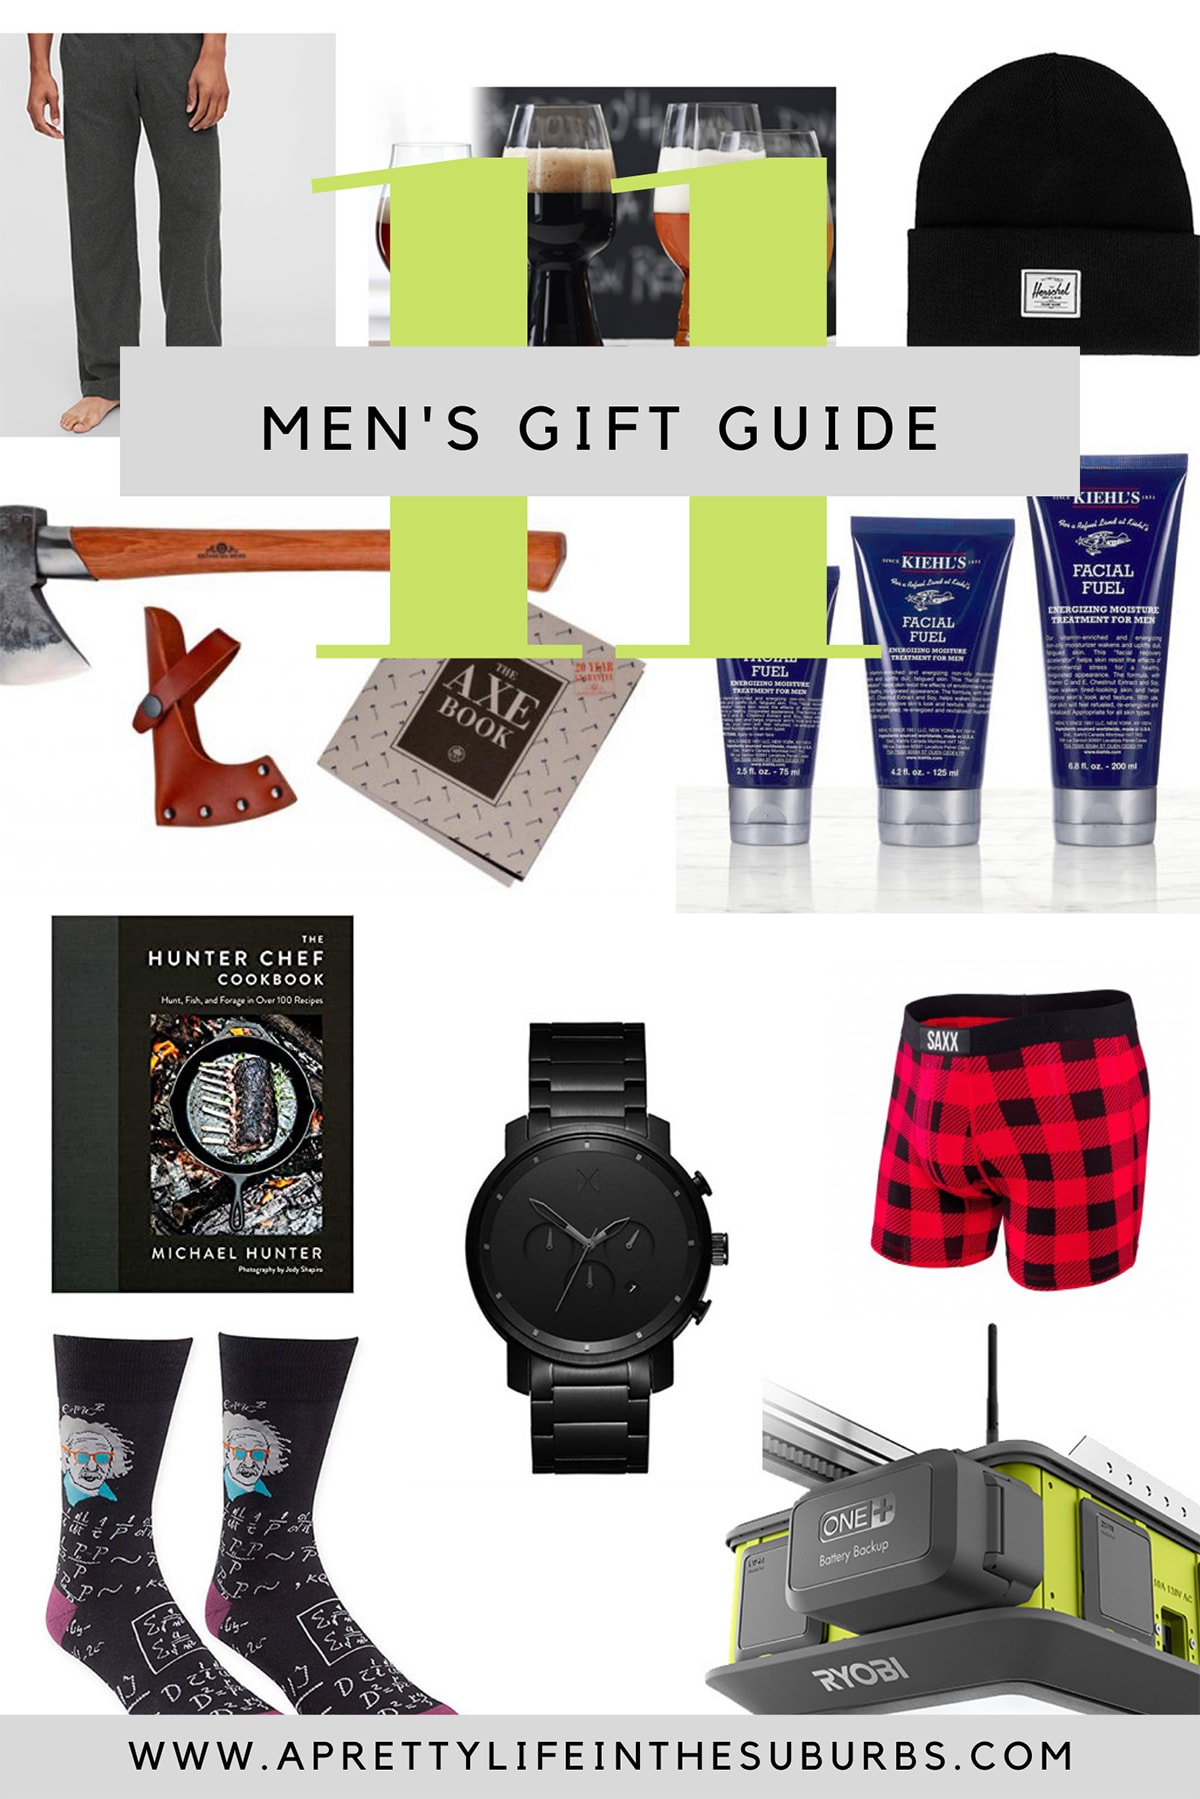 A Men's Holiday Gift Guide with images of gift ideas like pajamas, lotion, underwear, books, toques